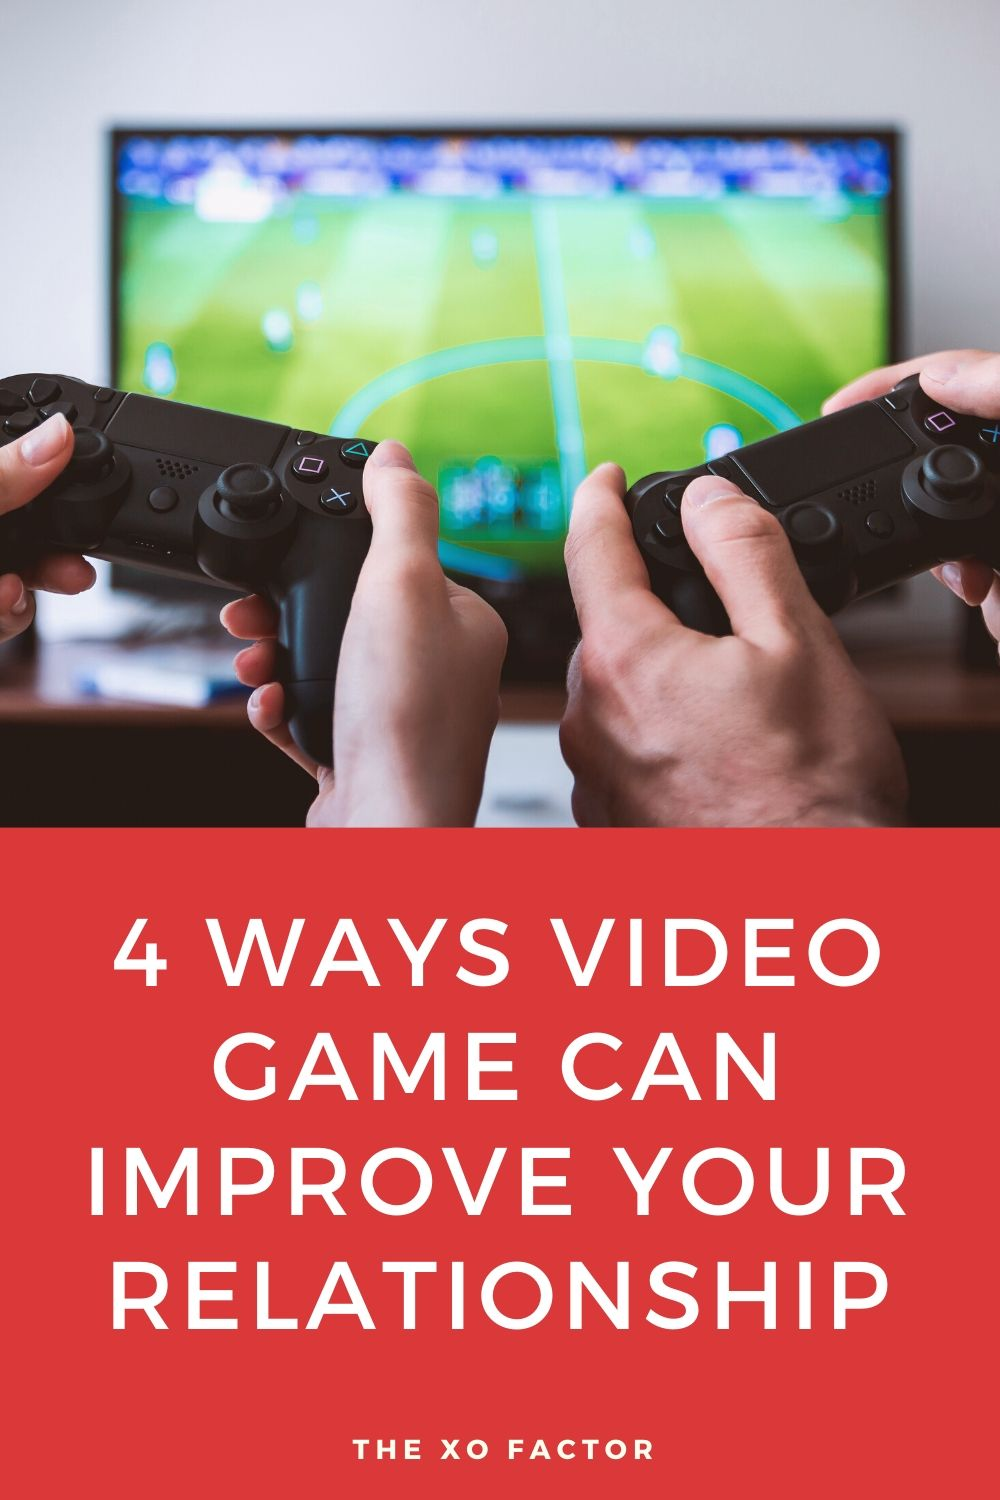 4 ways video games can improve your relationship